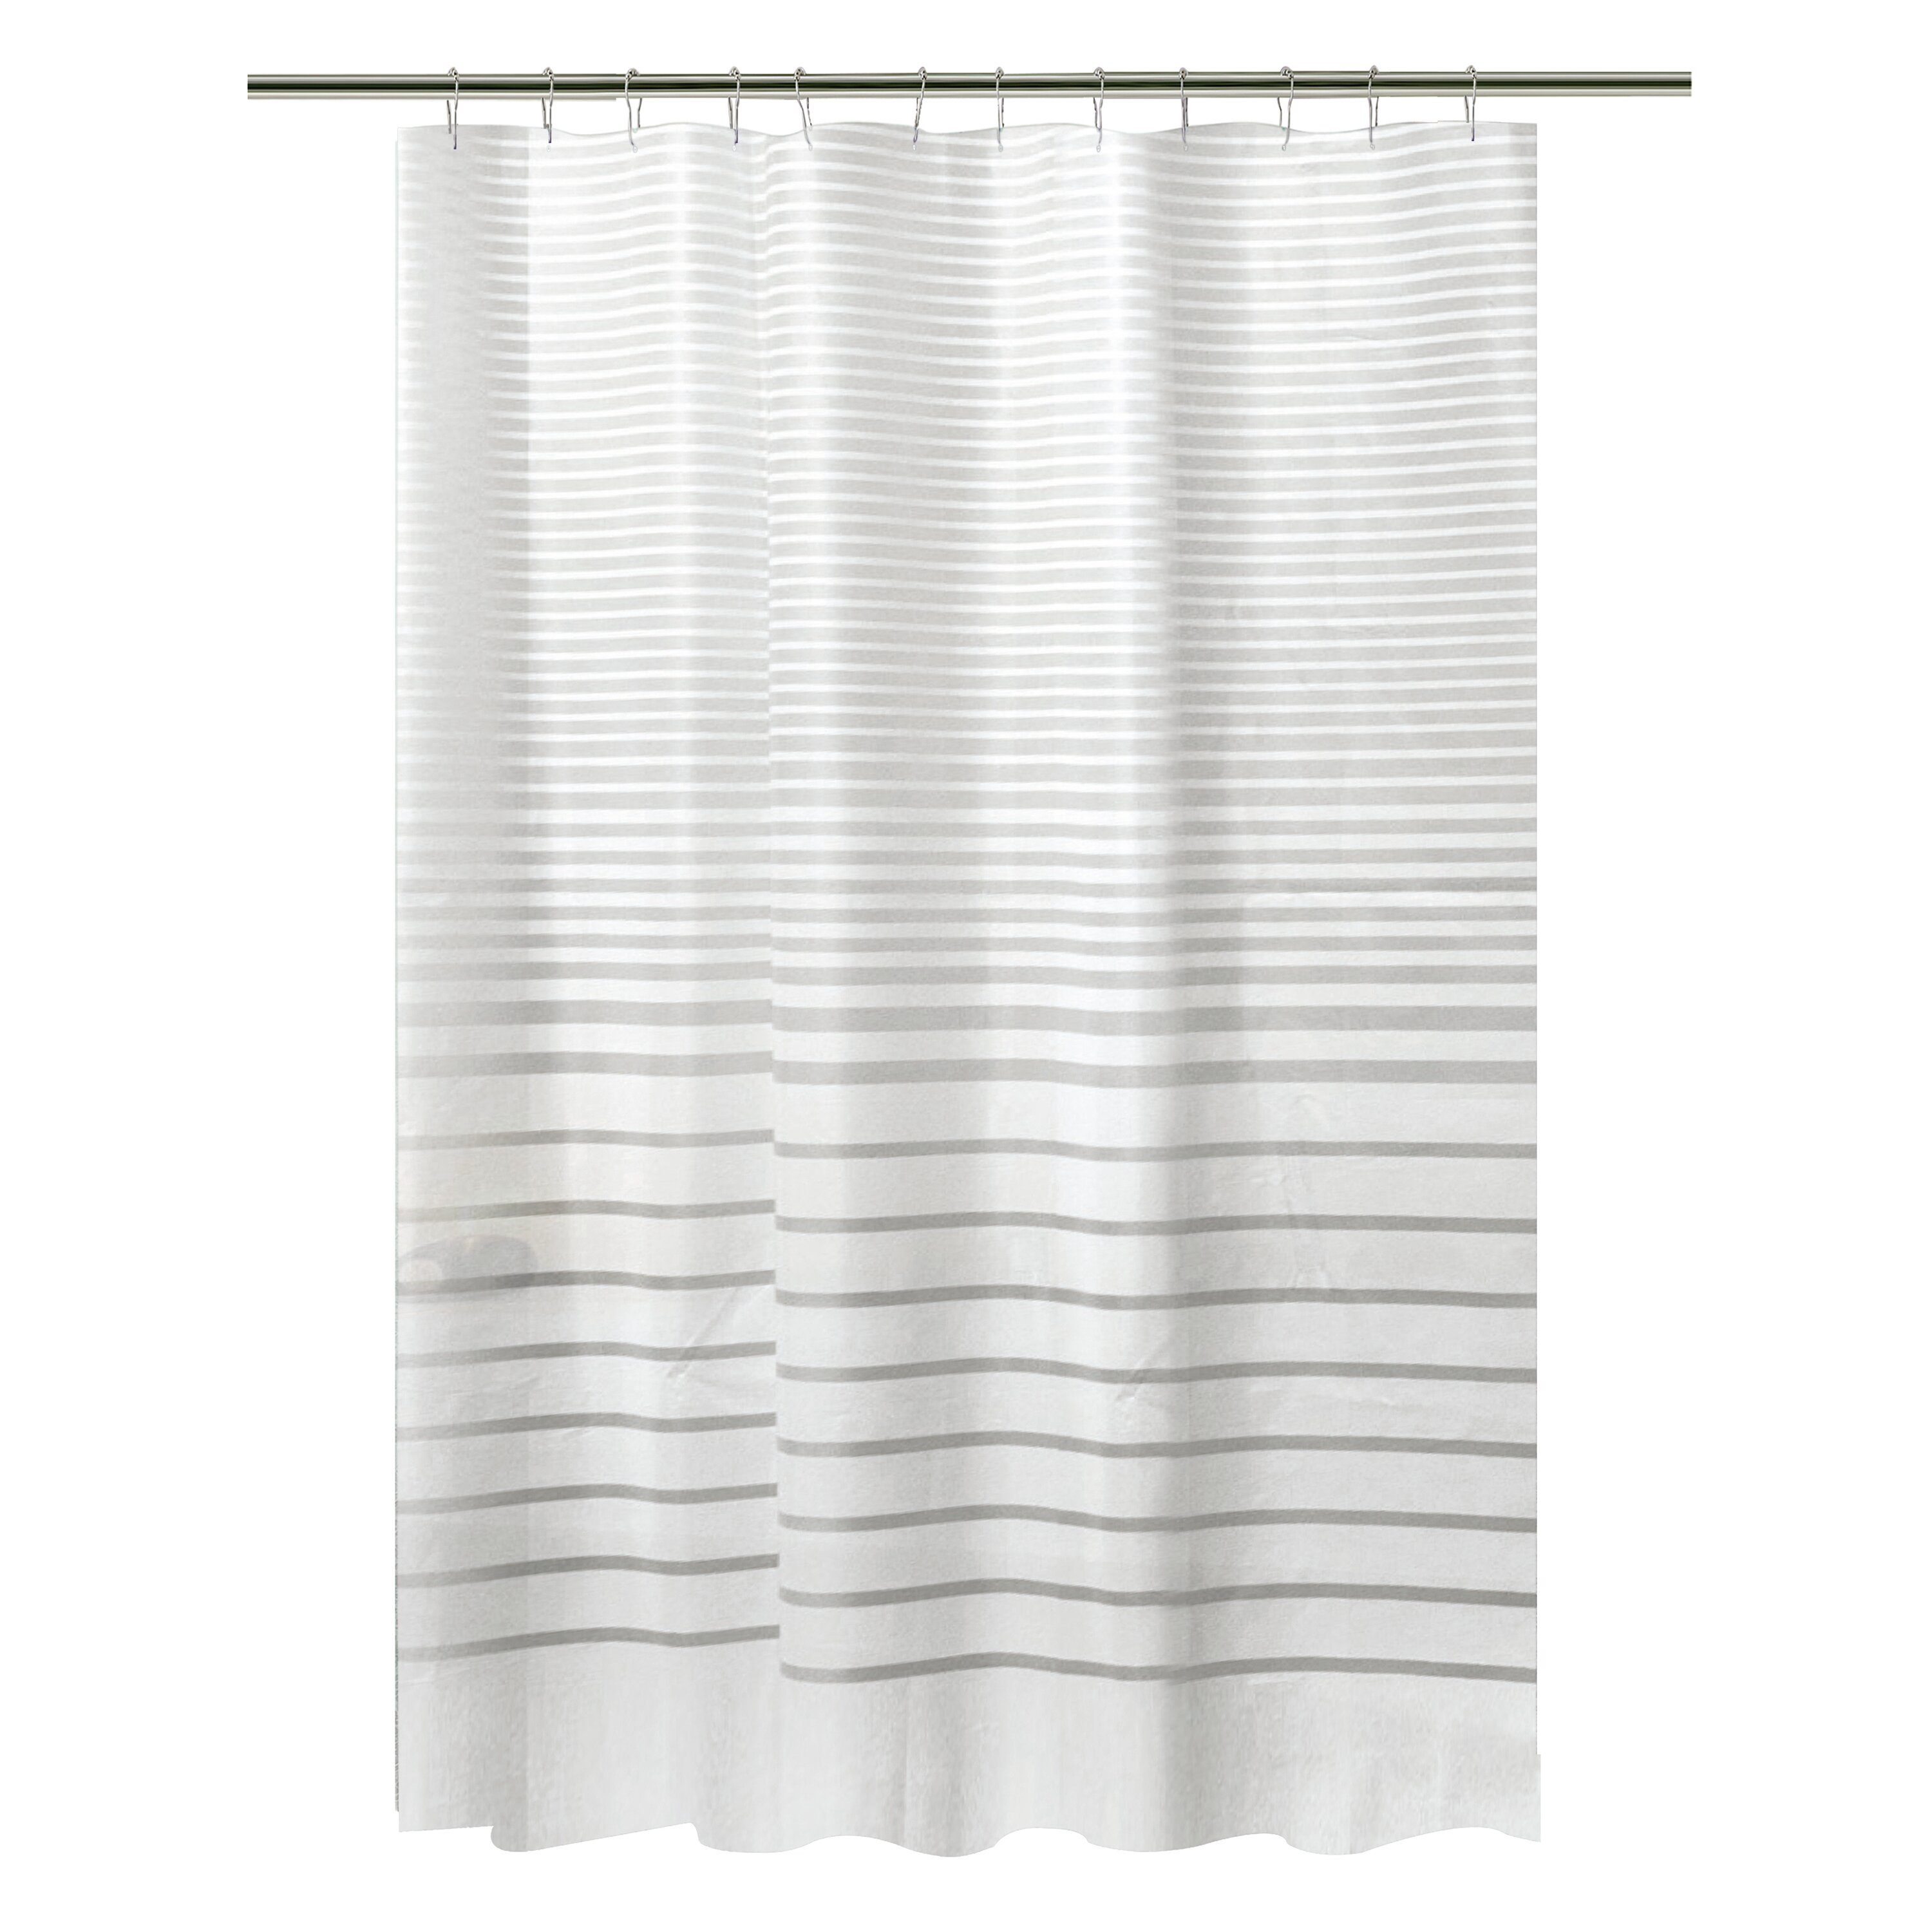 Bath Bliss Stripe Design PEVA Shower Curtain Set Reviews